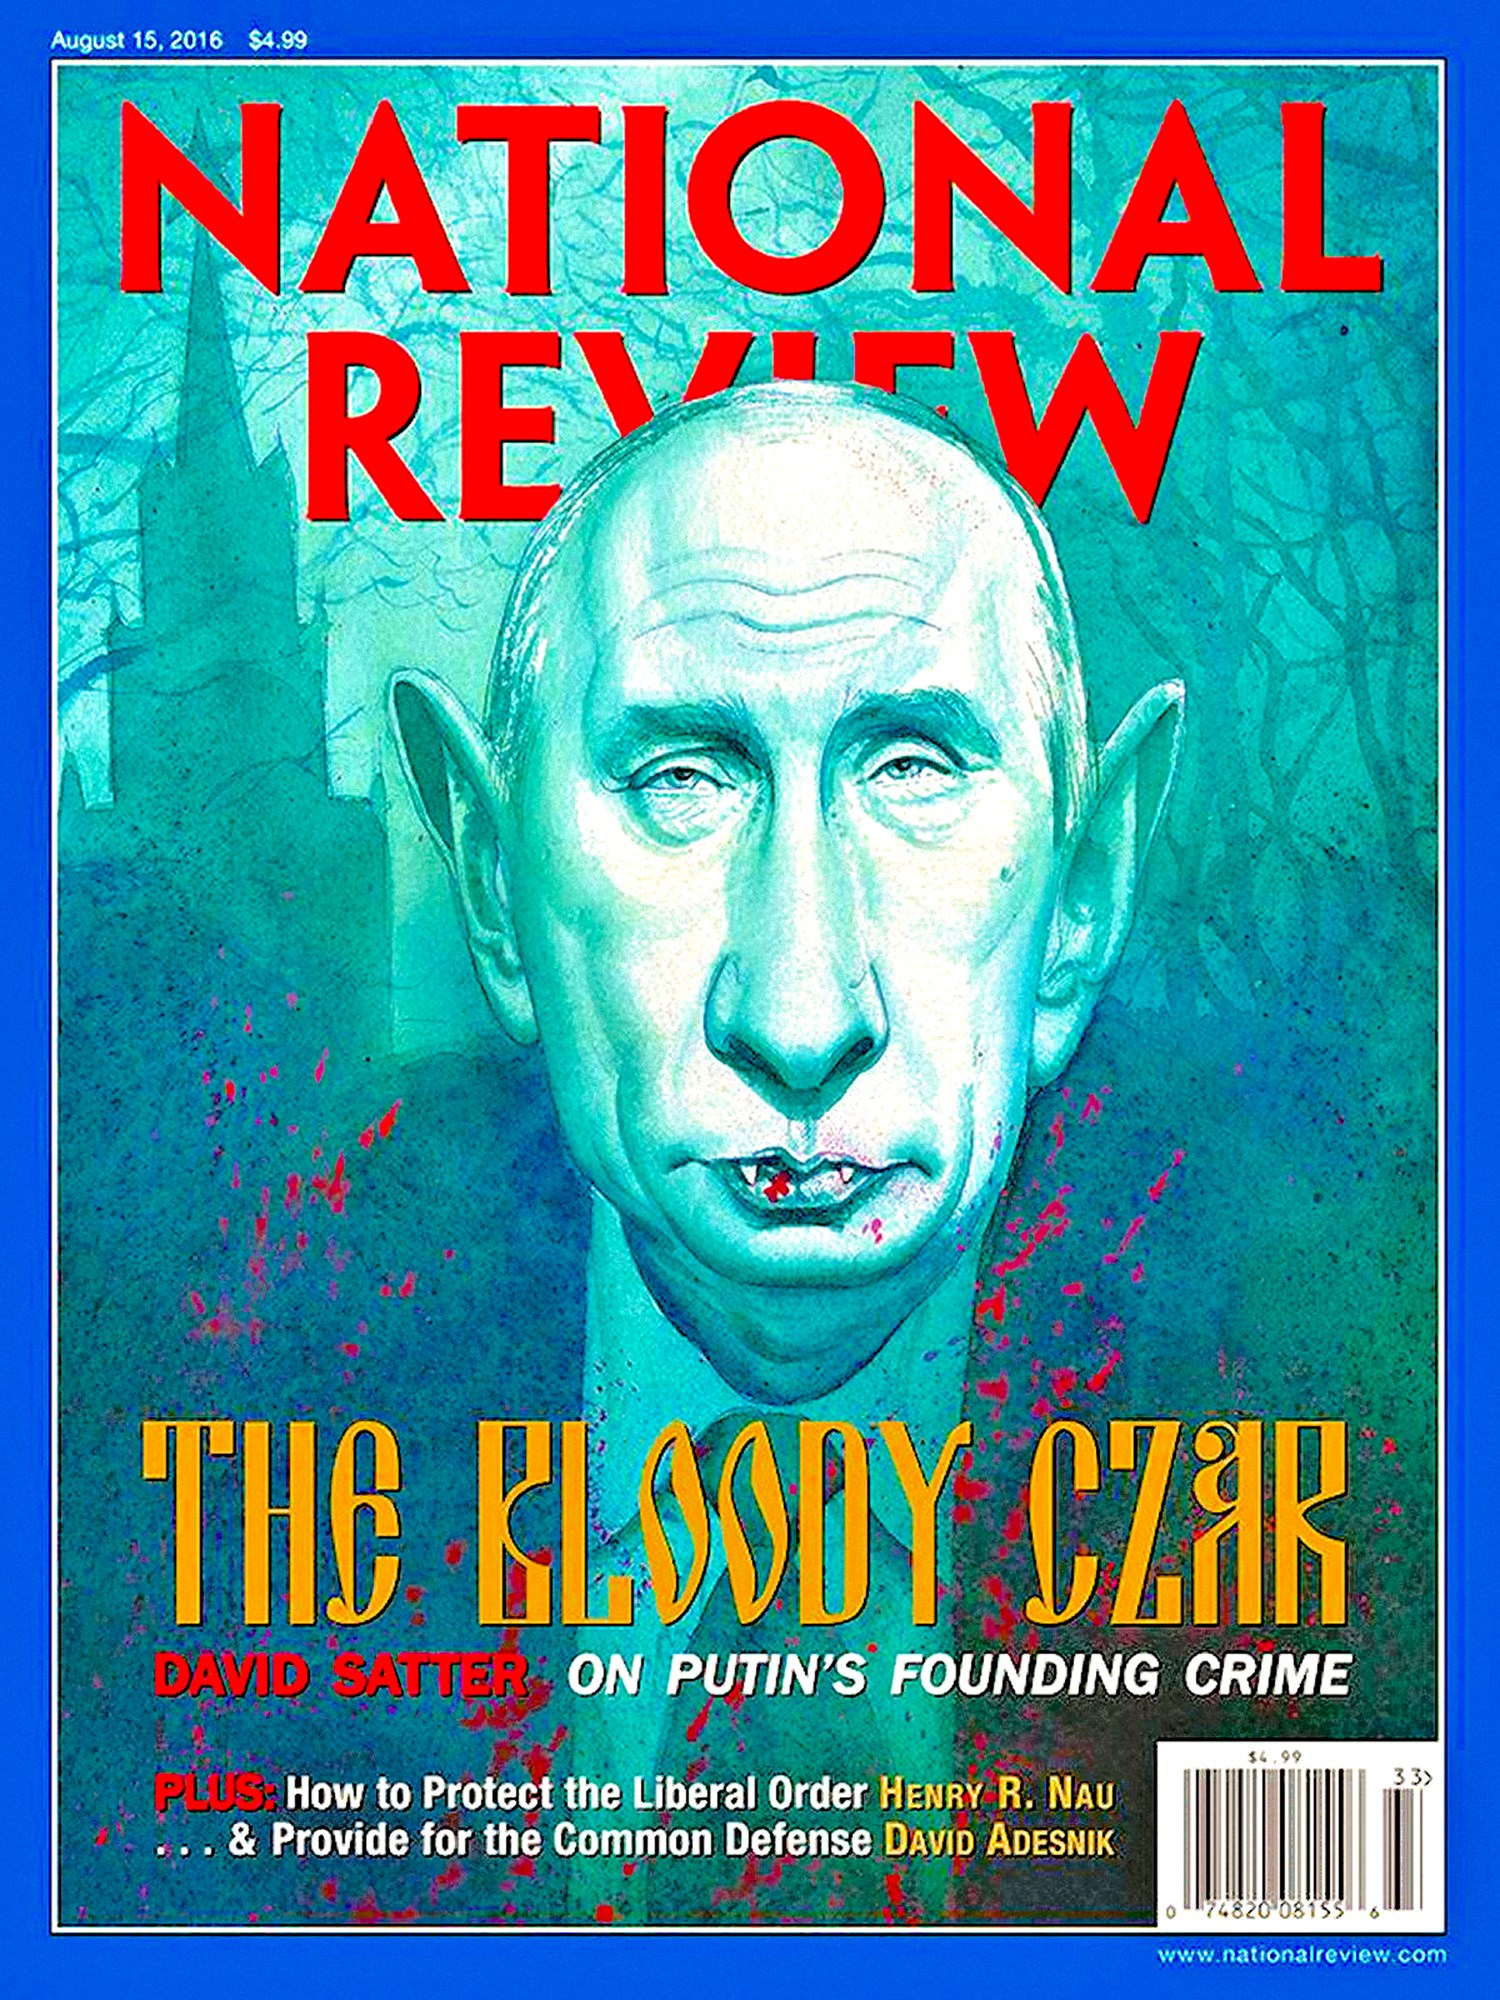 00 putin national review cover 110816_1